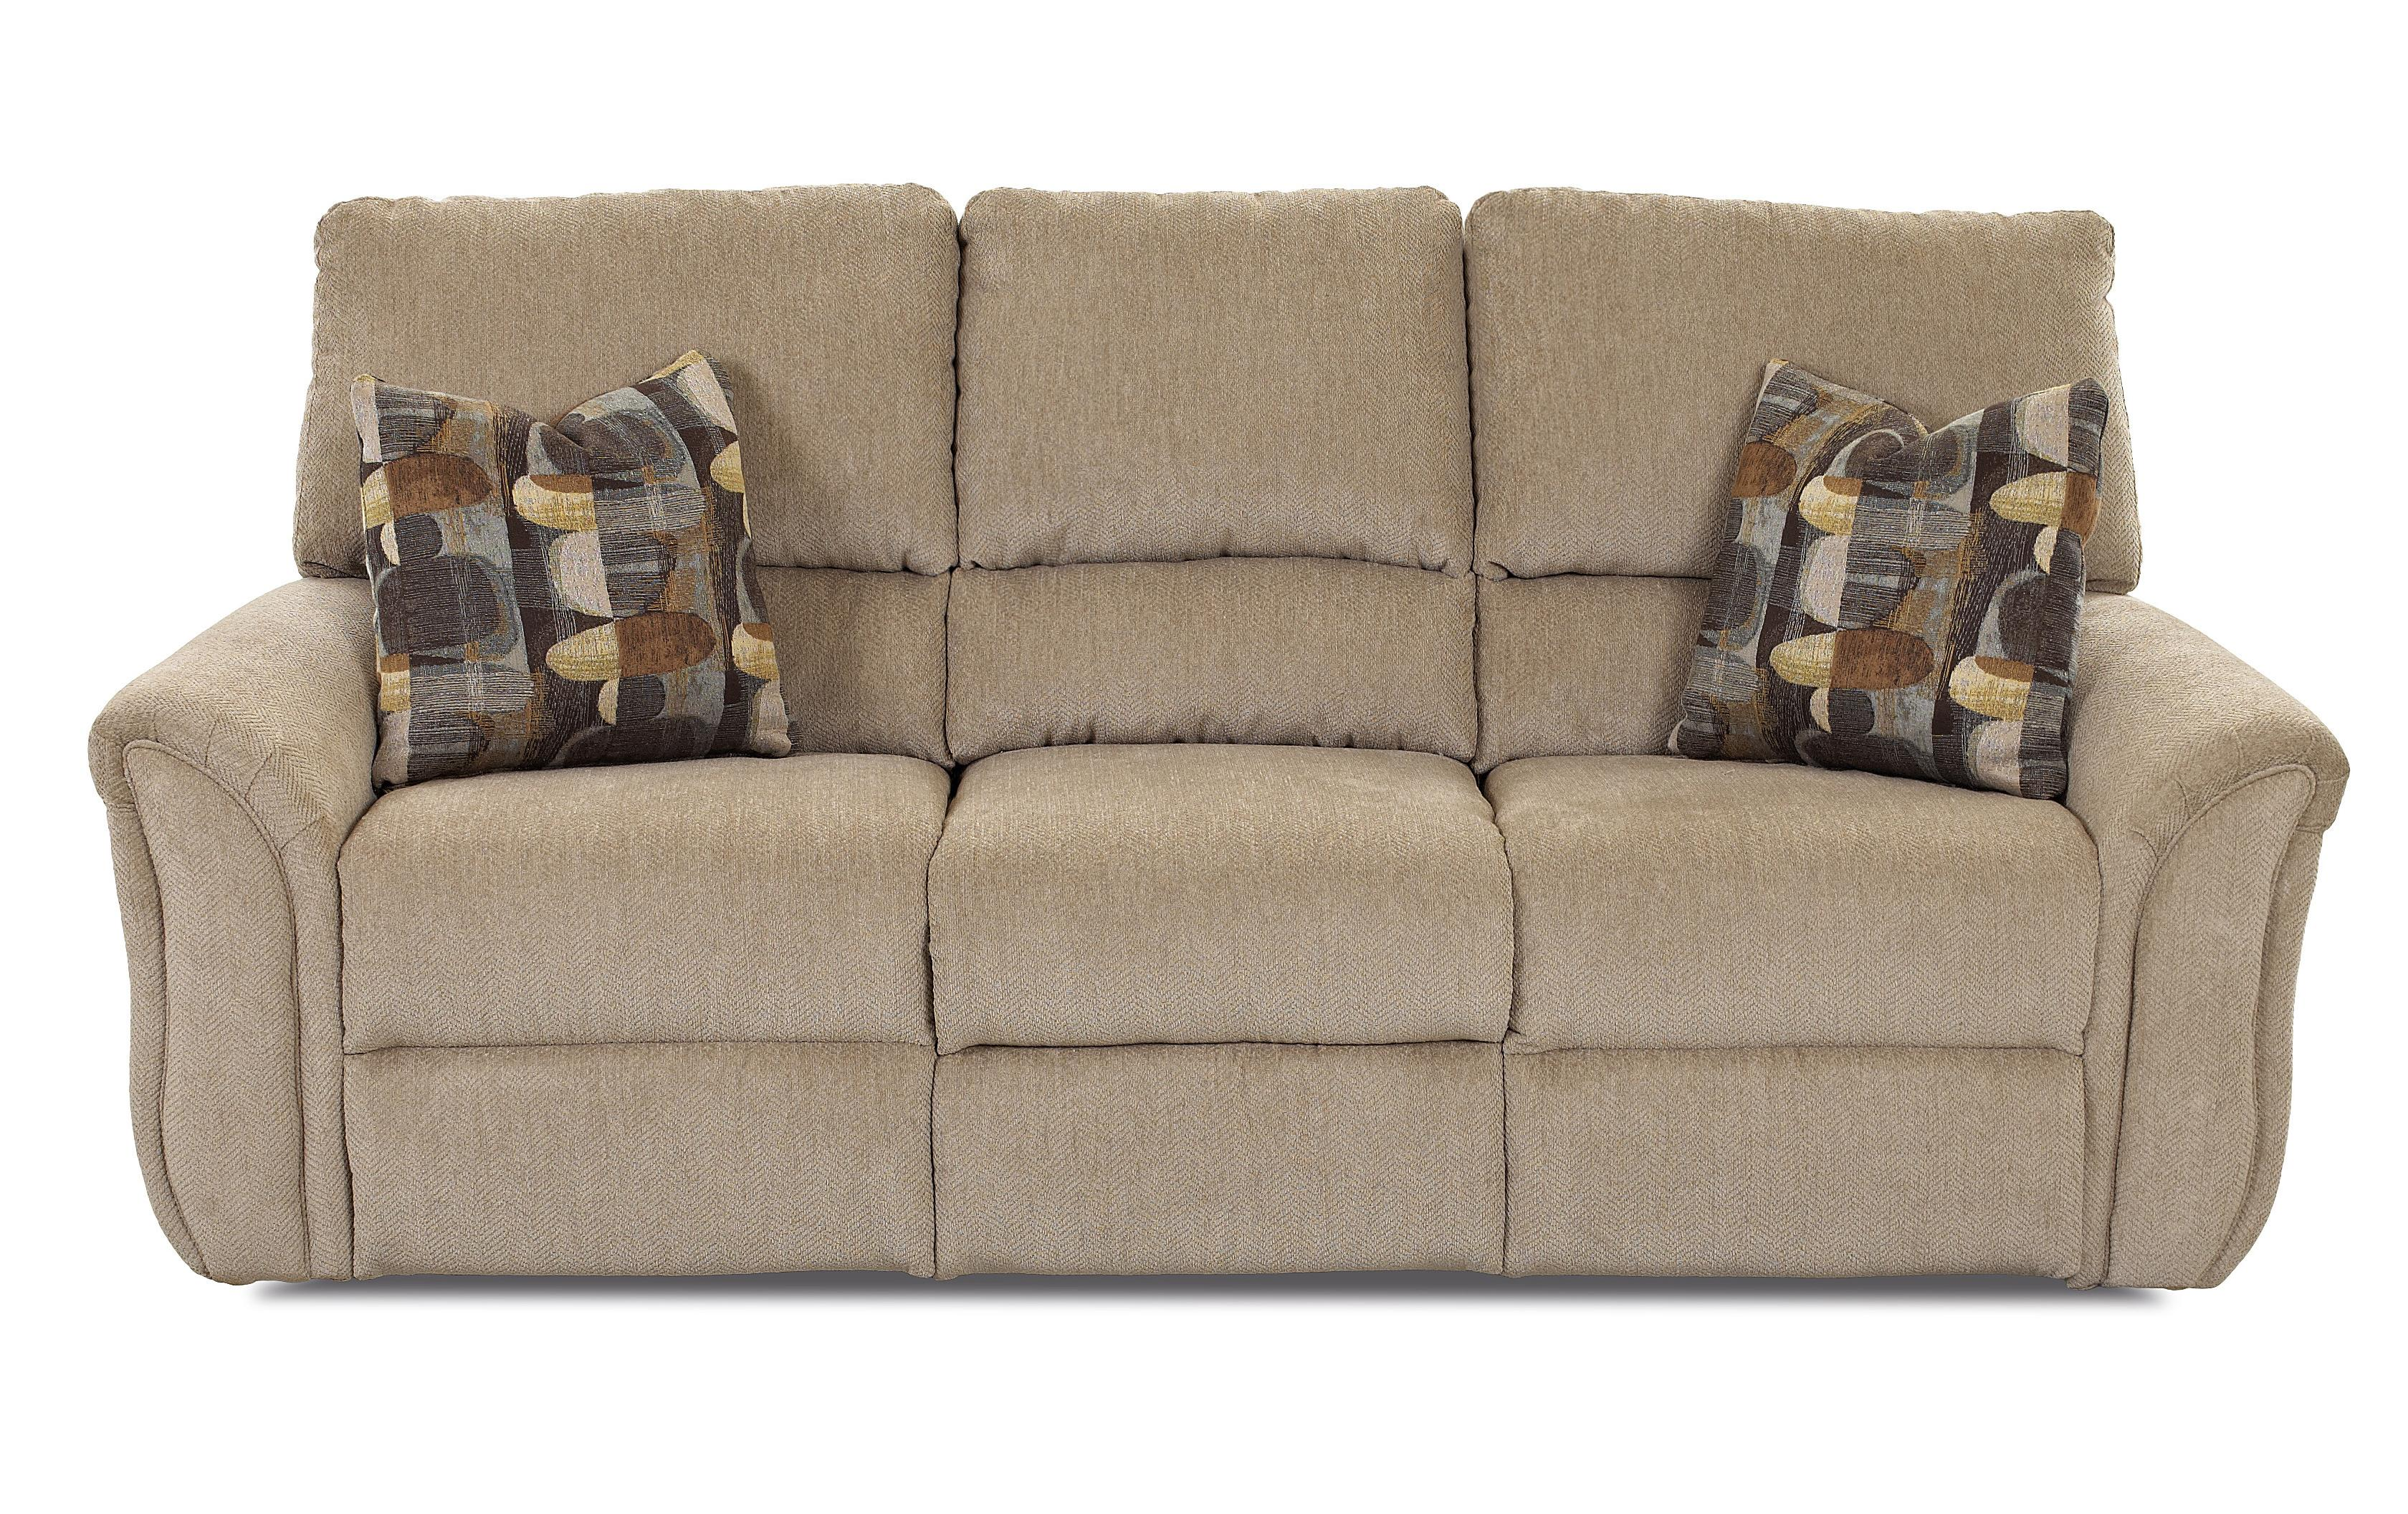 Klaussner Marcus 71903 Casual Power Reclining Sofa - Item Number: 71943P PWRS-JollaParchment